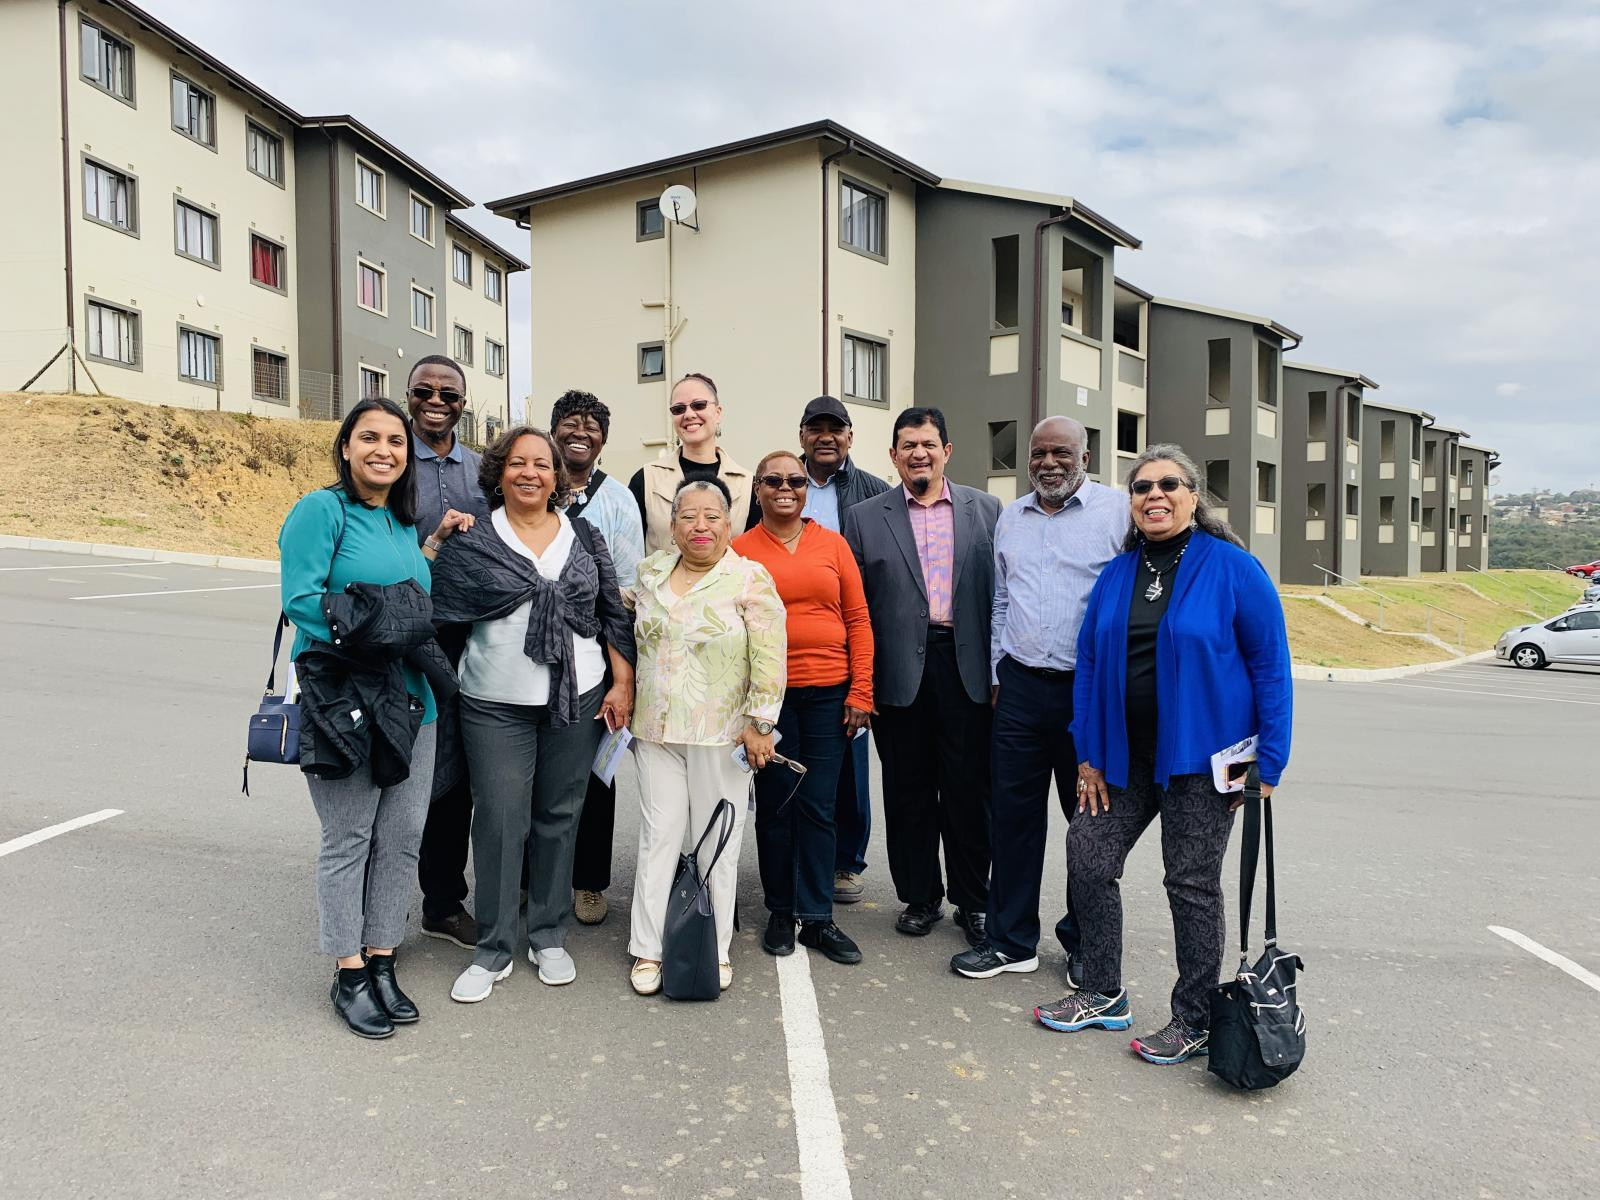 MRED's Tanya Bansal and Maria Day-Marshall, with colleagues in South Africa in 2019.